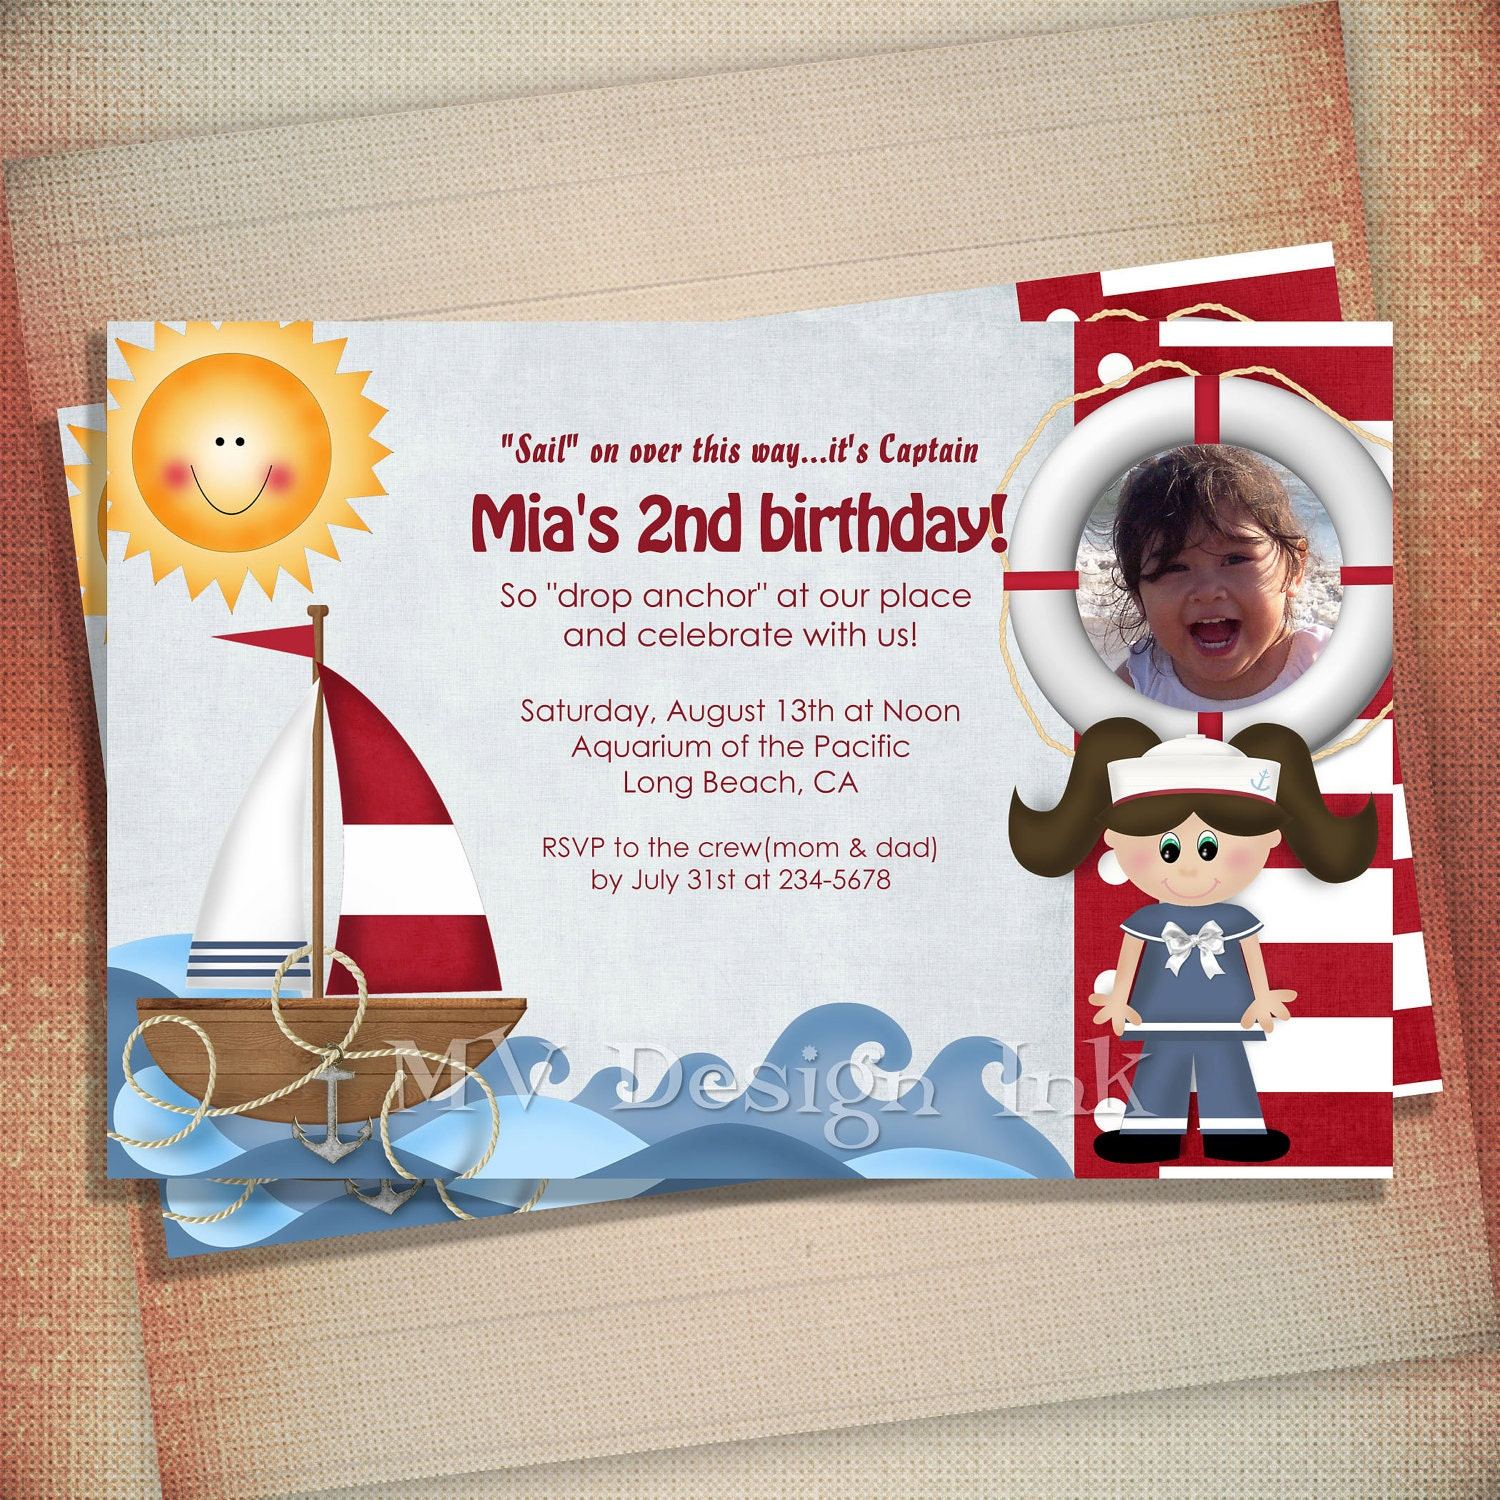 Sailor Baby Shower Invitations was beautiful invitation sample